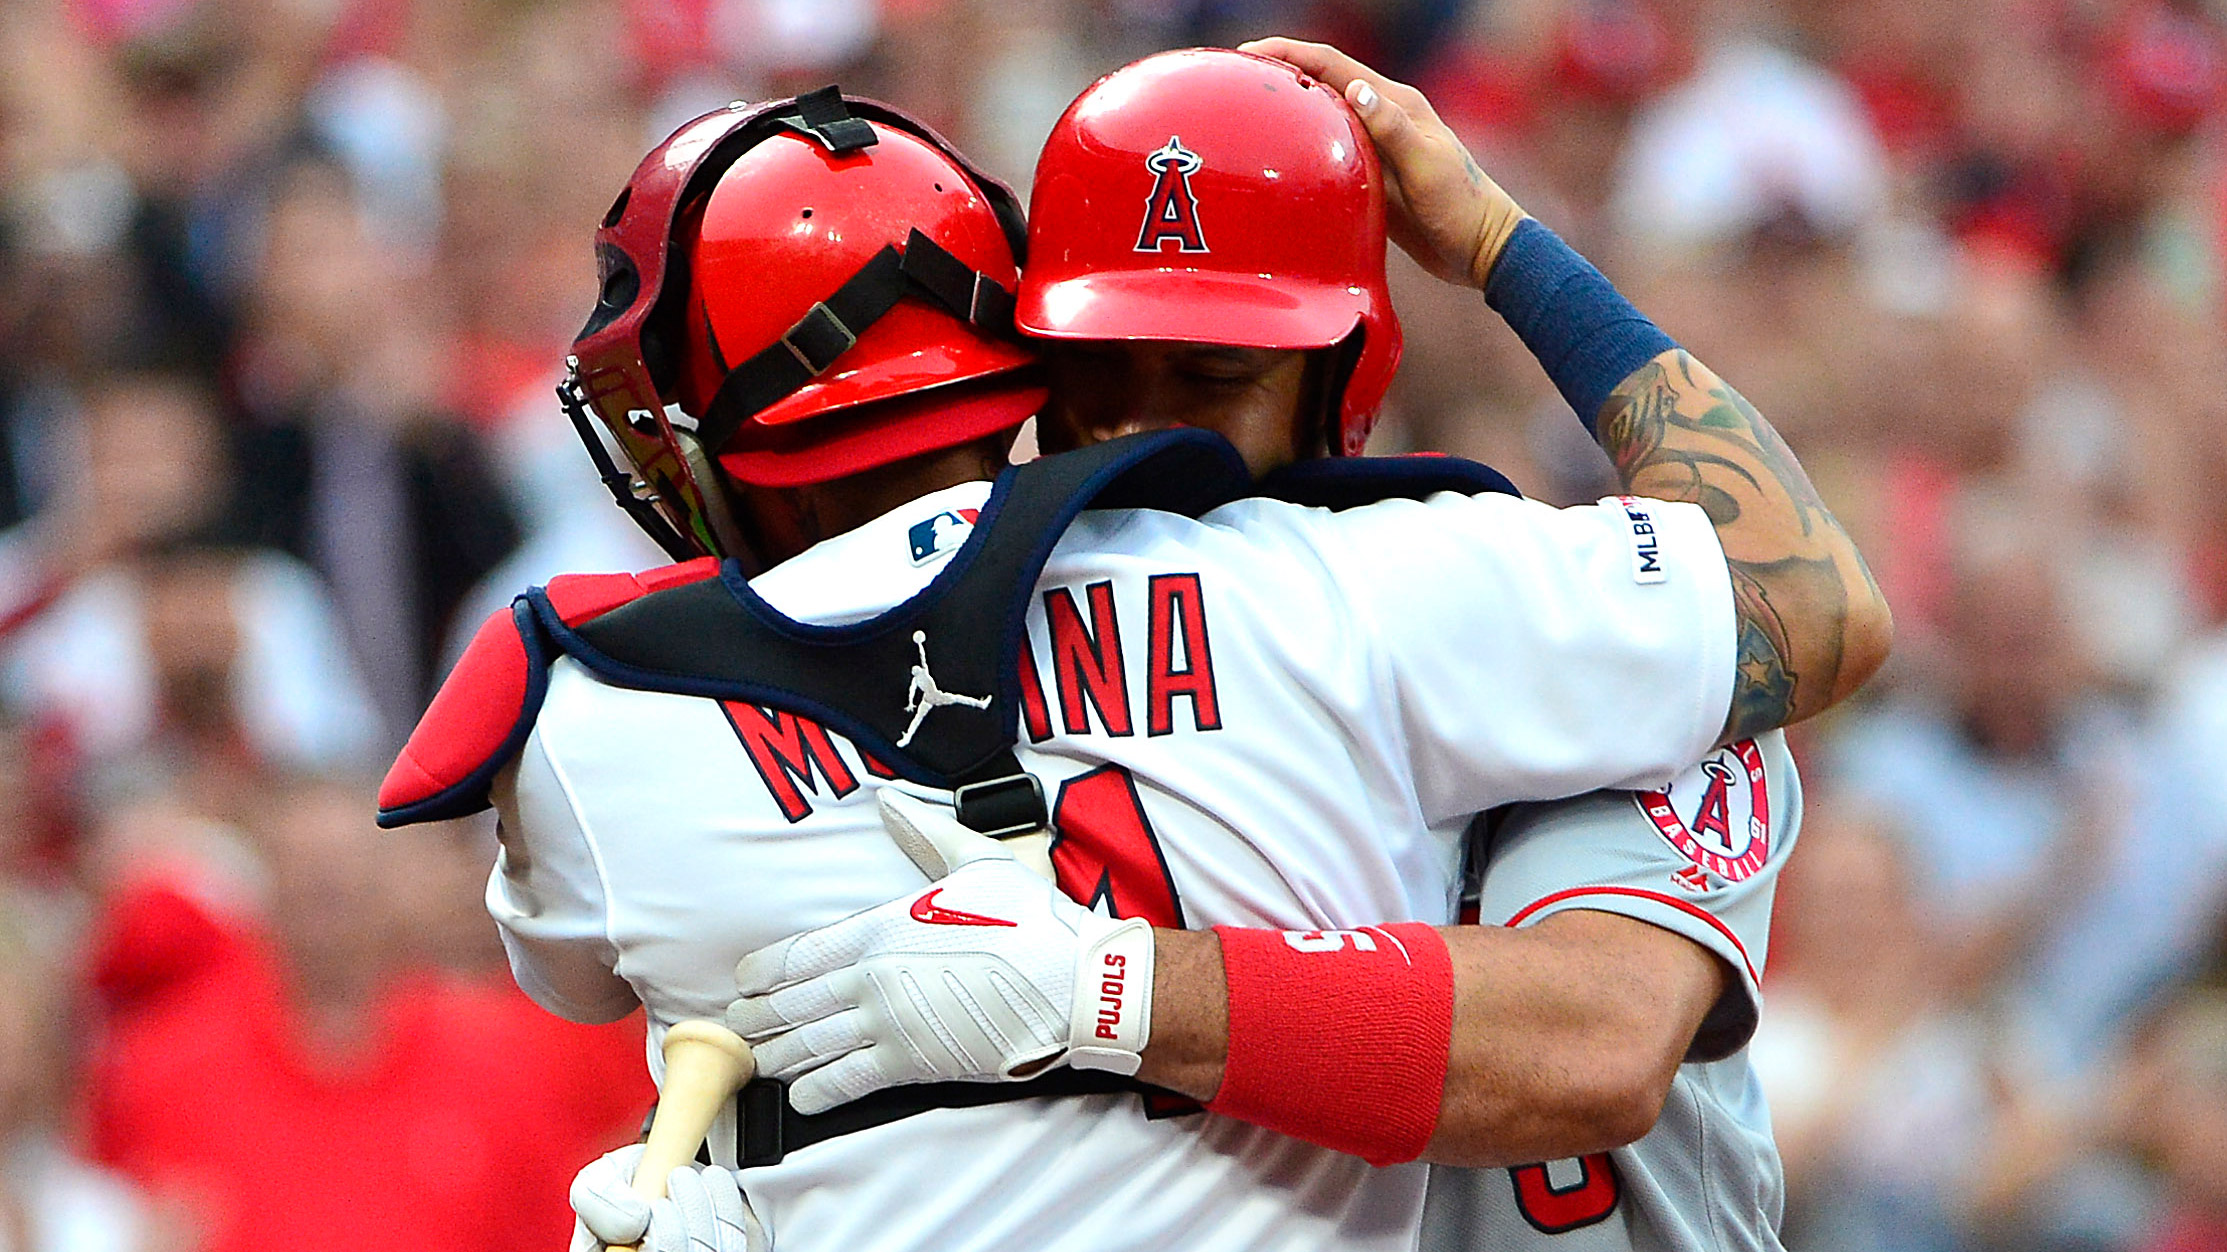 Fans cheer Pujols in his return to St. Louis, Cardinals get 5-1 win over Angels